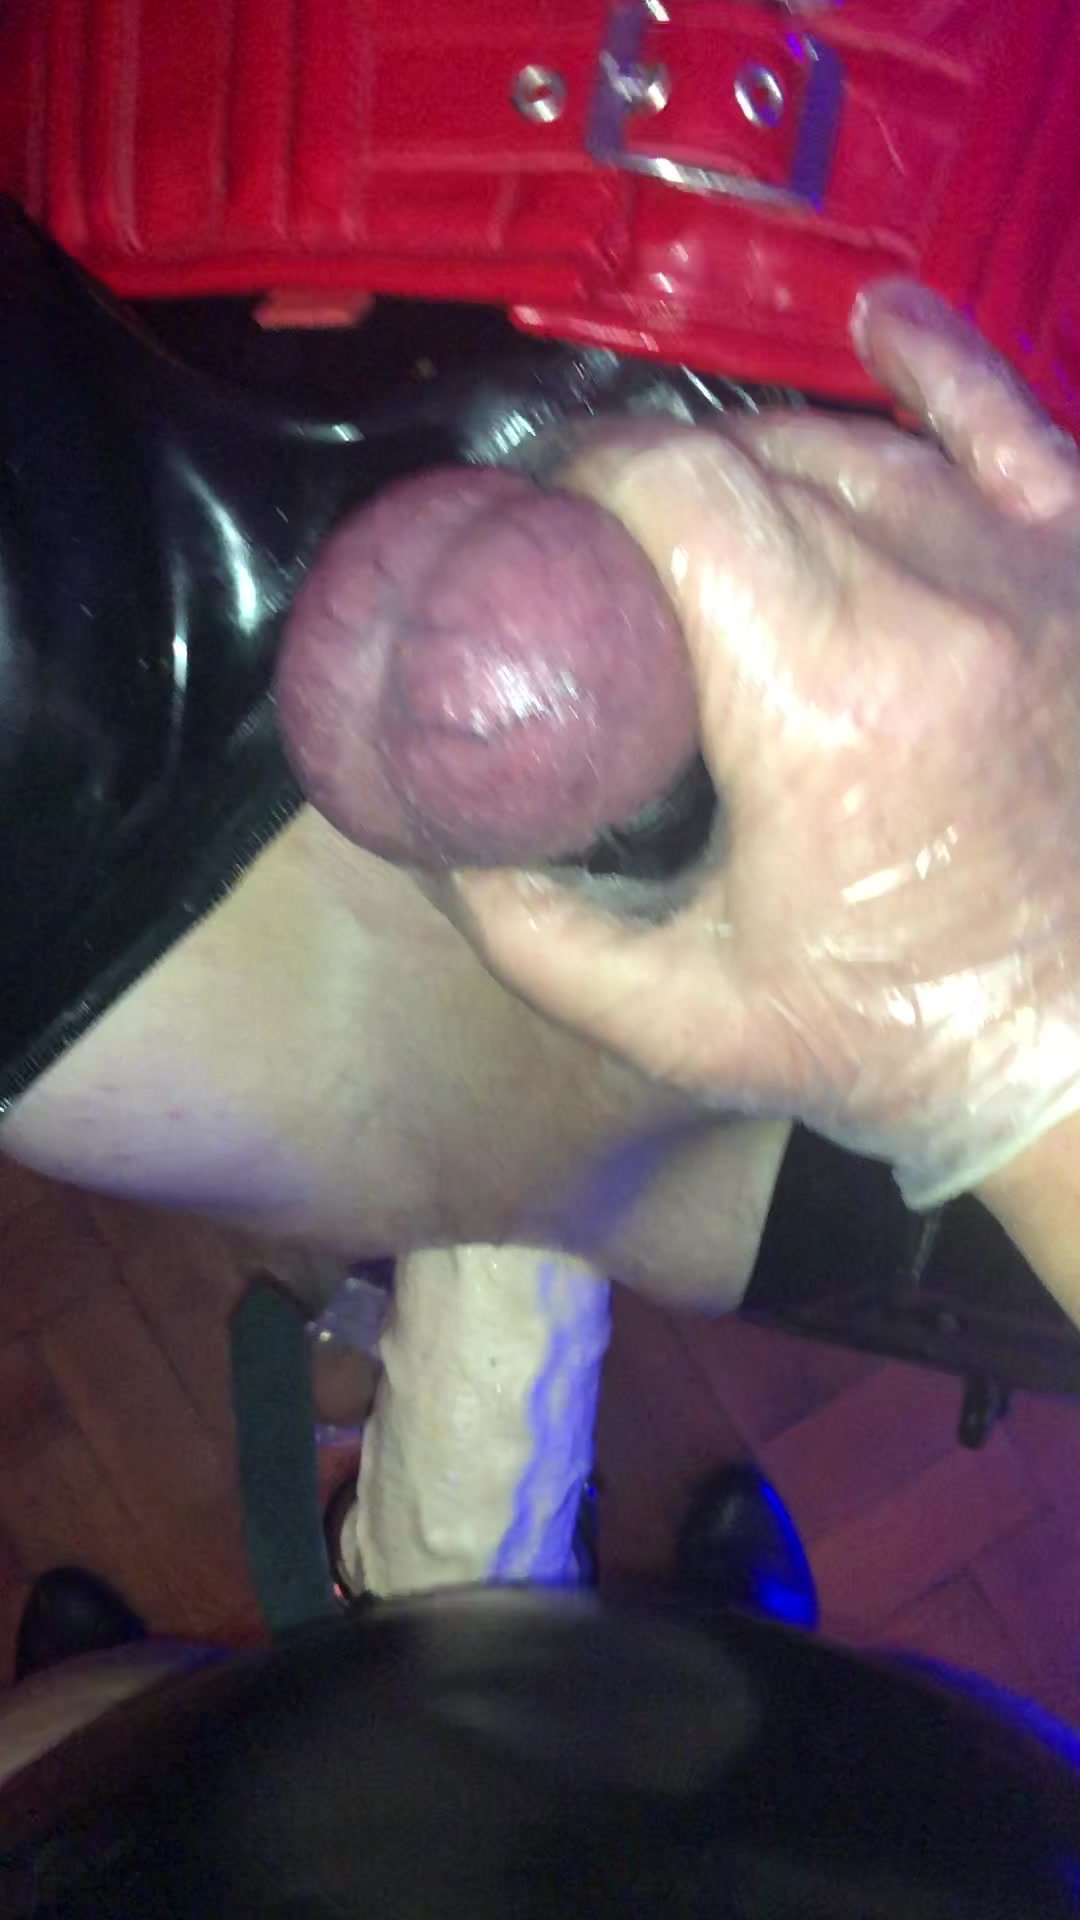 Huge strapon - watch the rubber Slut take the lot 13.5 inches